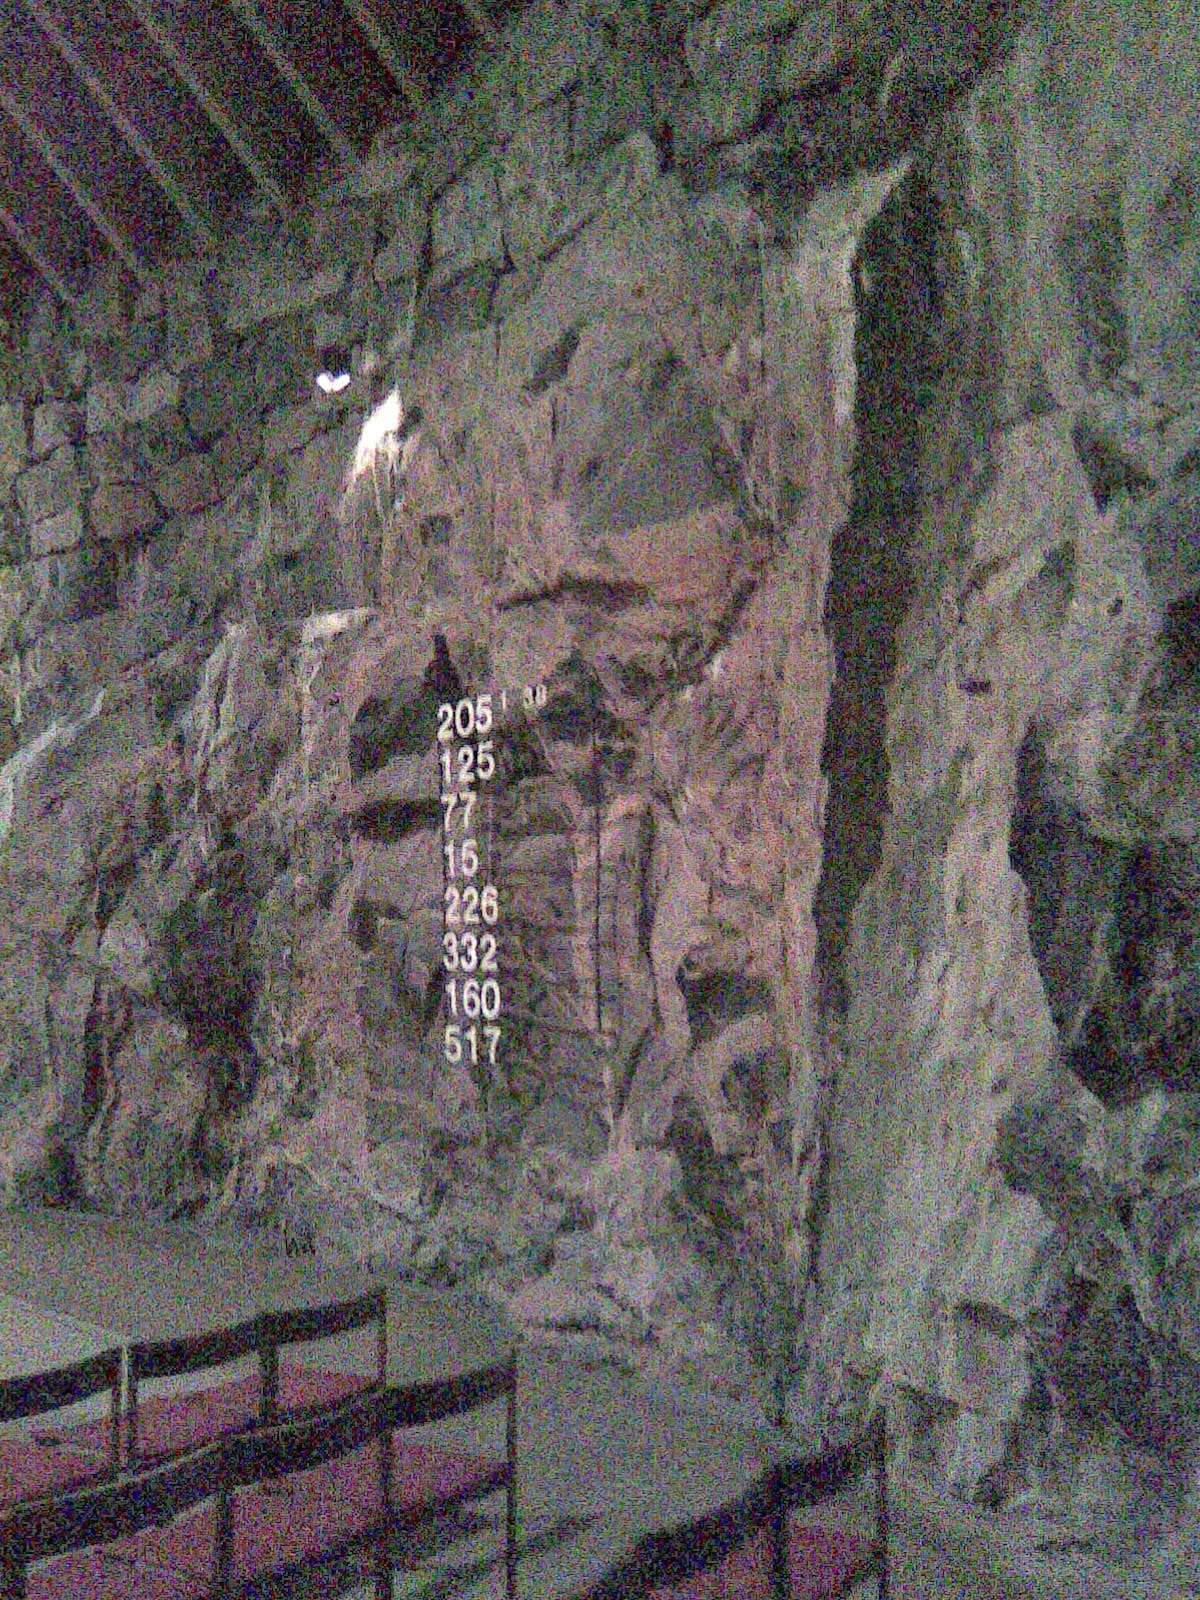 Hymns at Metal Mass, Temppeliaukio Church, 2010-10-14